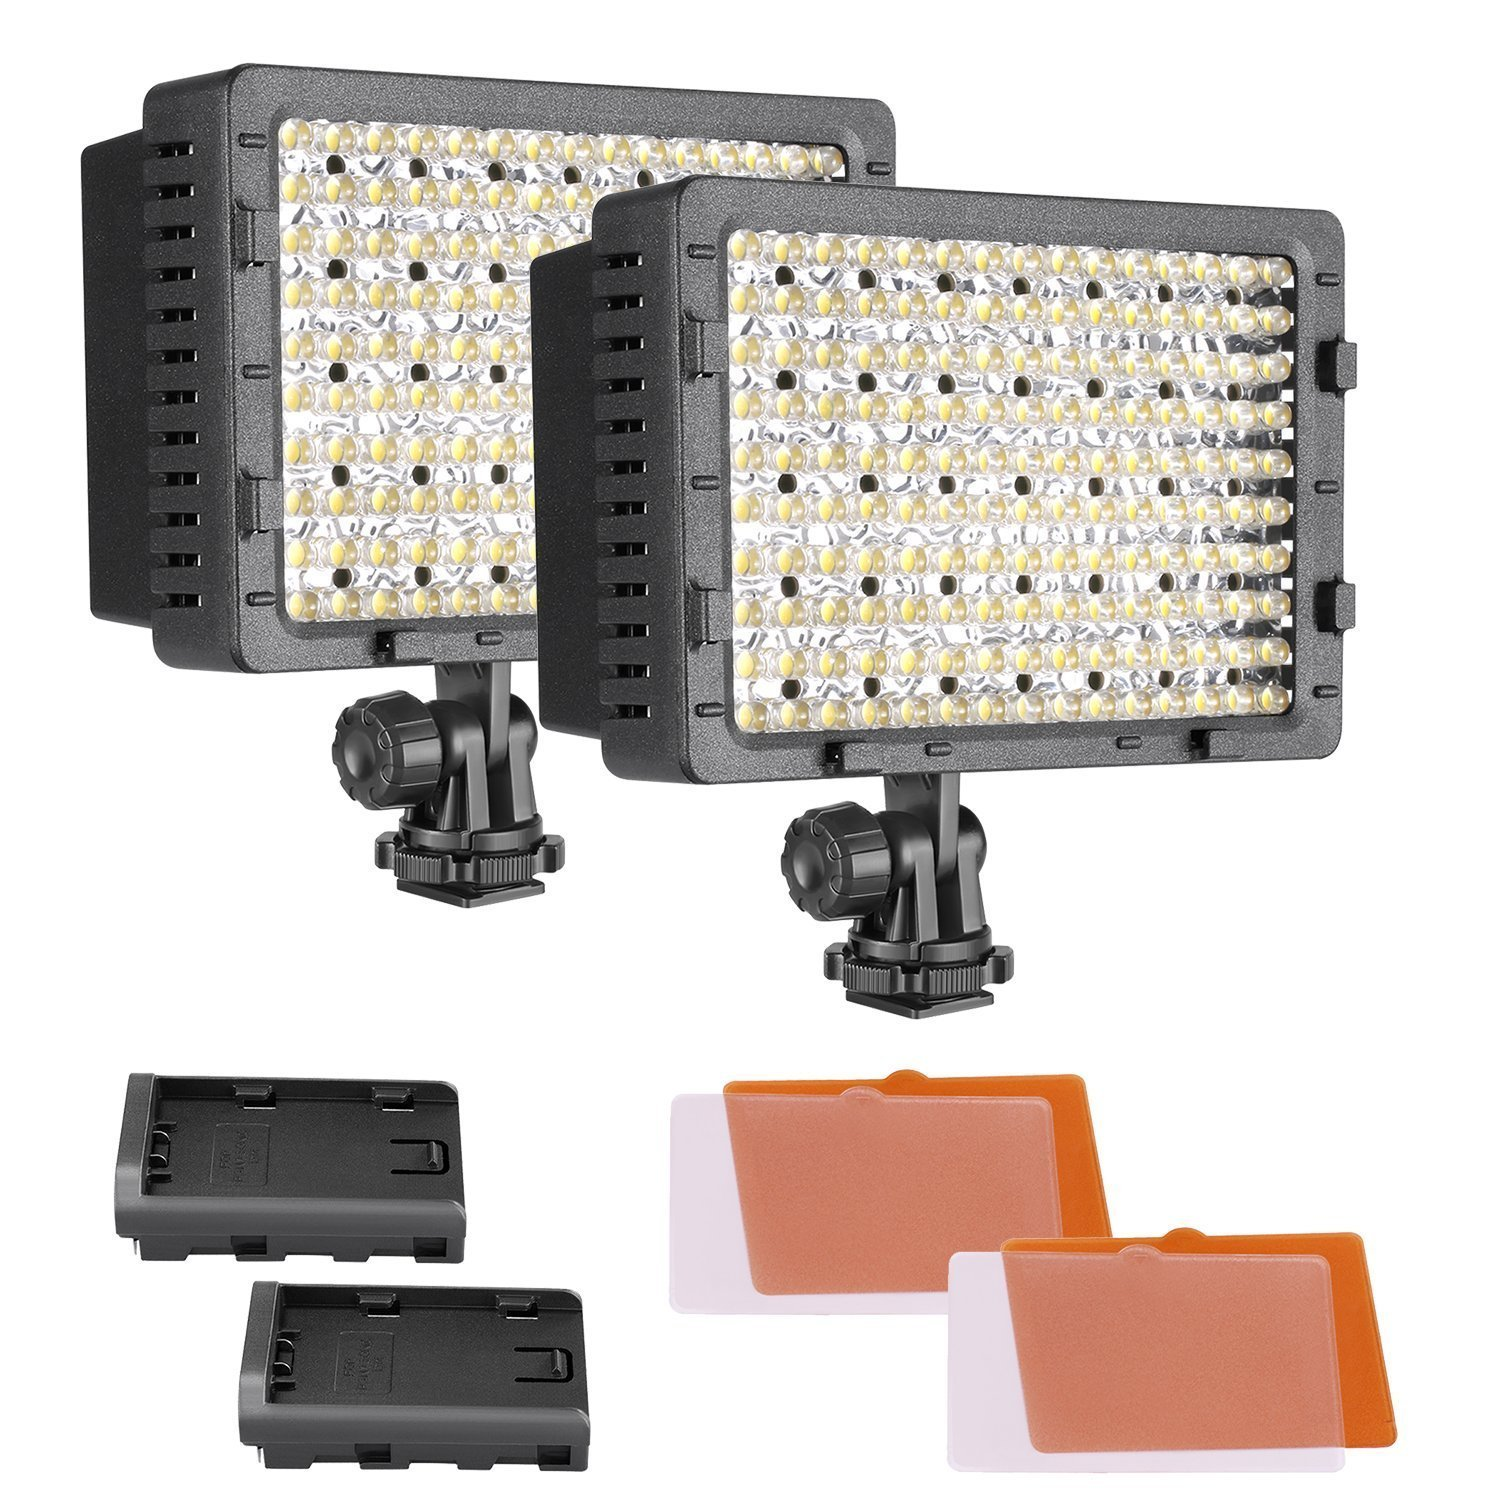 Neewer 2-Pack Dimmable 216 LED Video Light with 4 Color Filters White and Orange for Canon, Nikon, Pentax, Panasonic, Sony, Samsung and Olympus DSLR Cameras Camcorders by Neewer